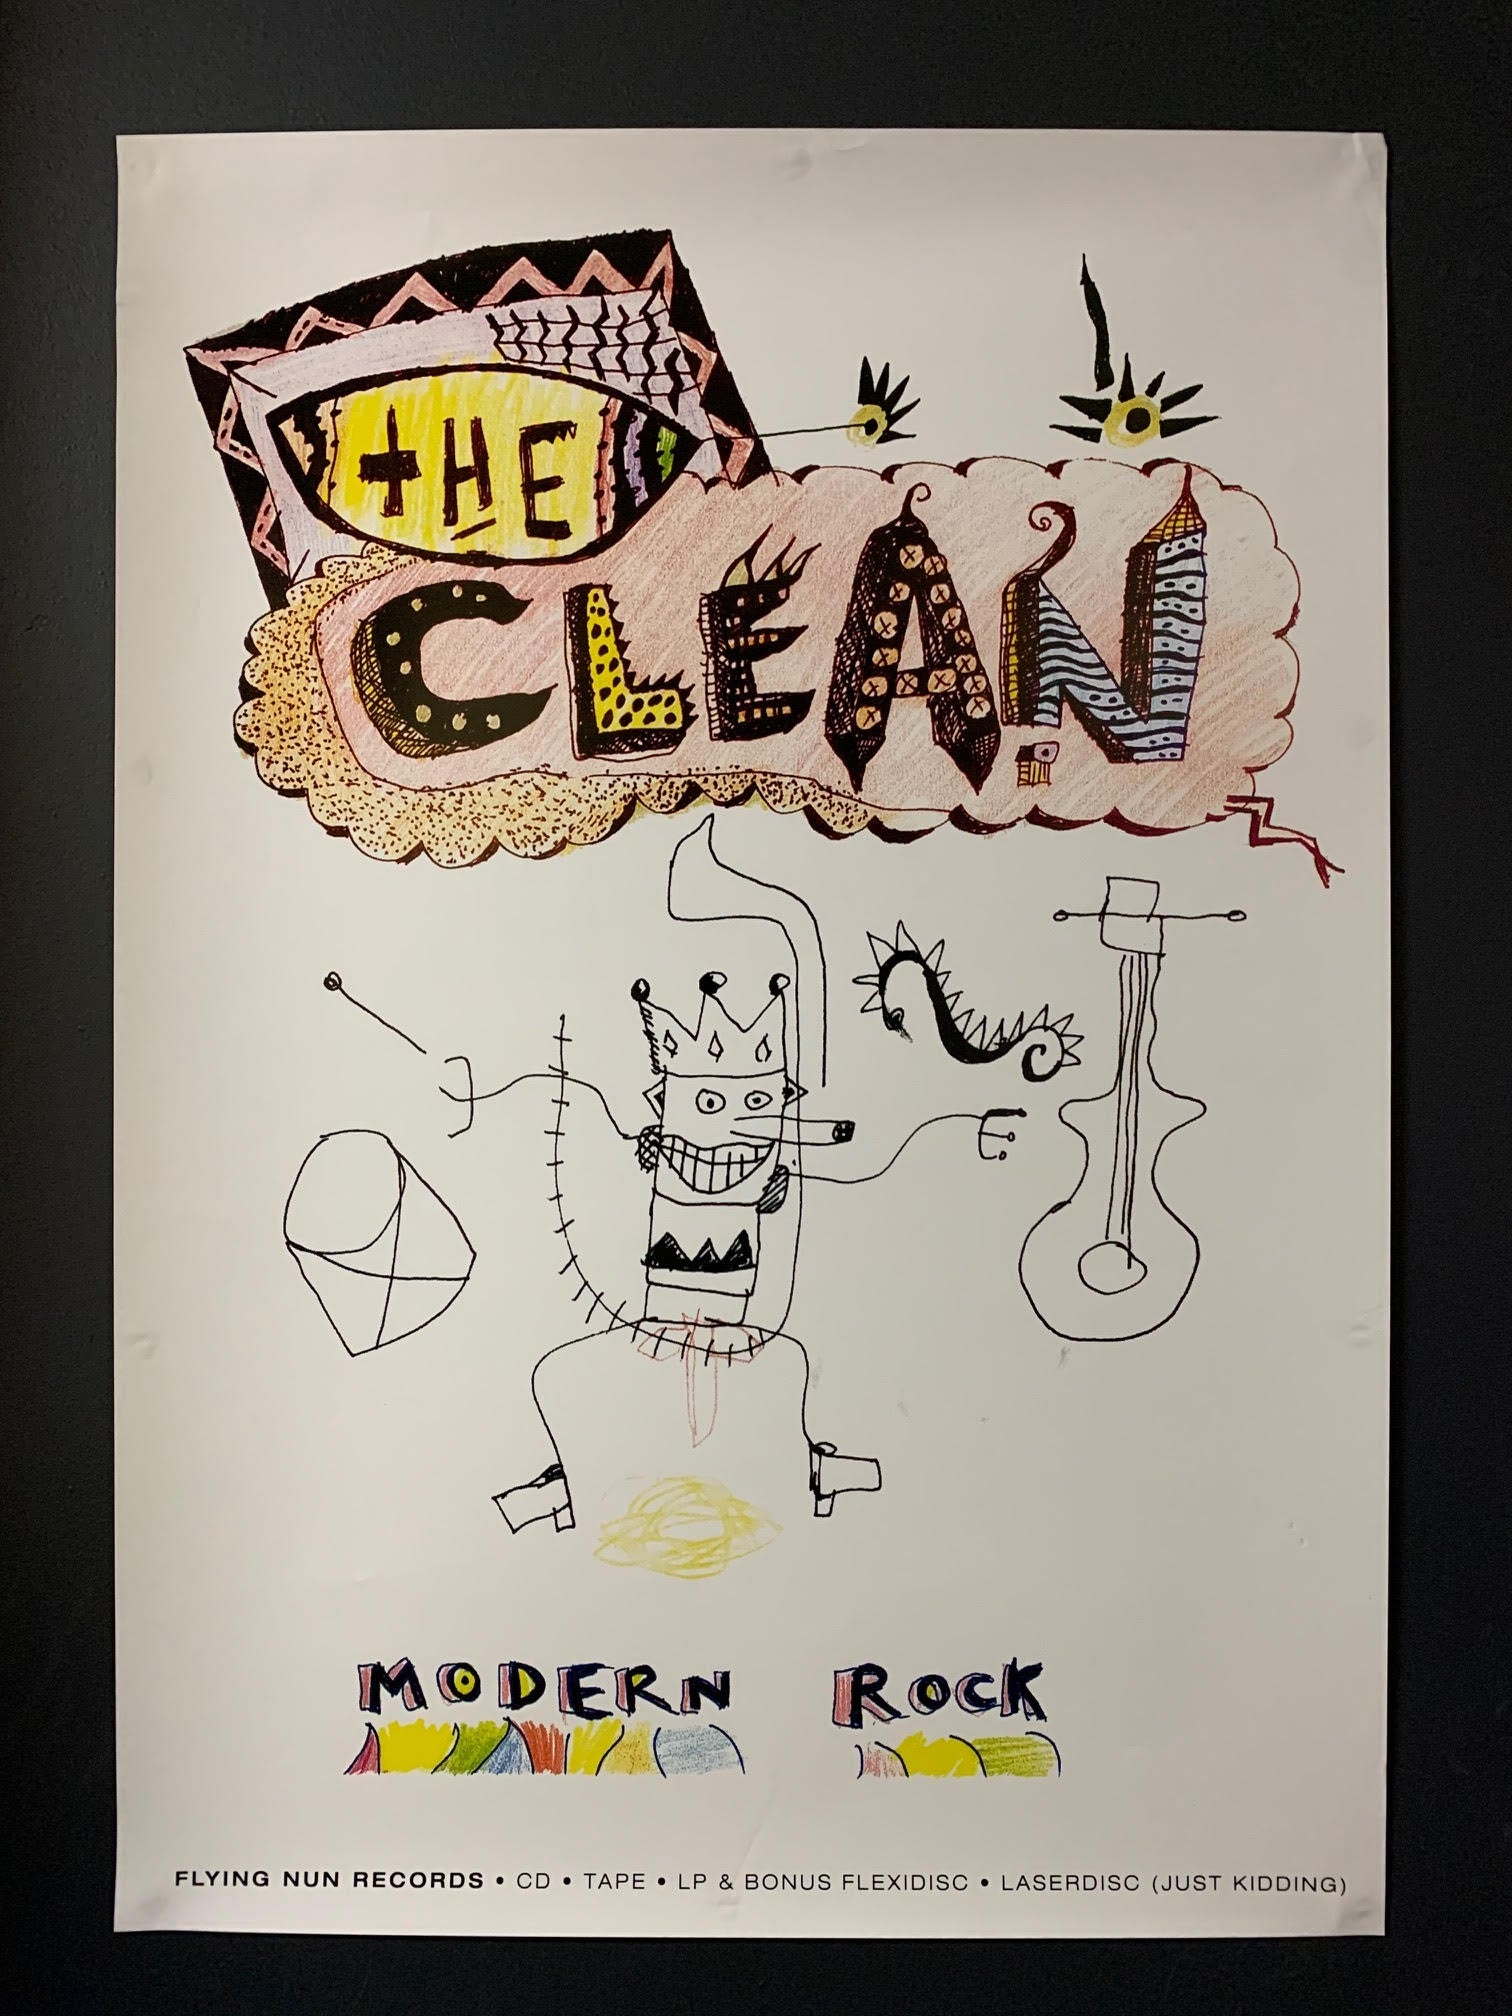 CLEAN THE-MODERN ROCK ORIGINAL PROMO POSTER